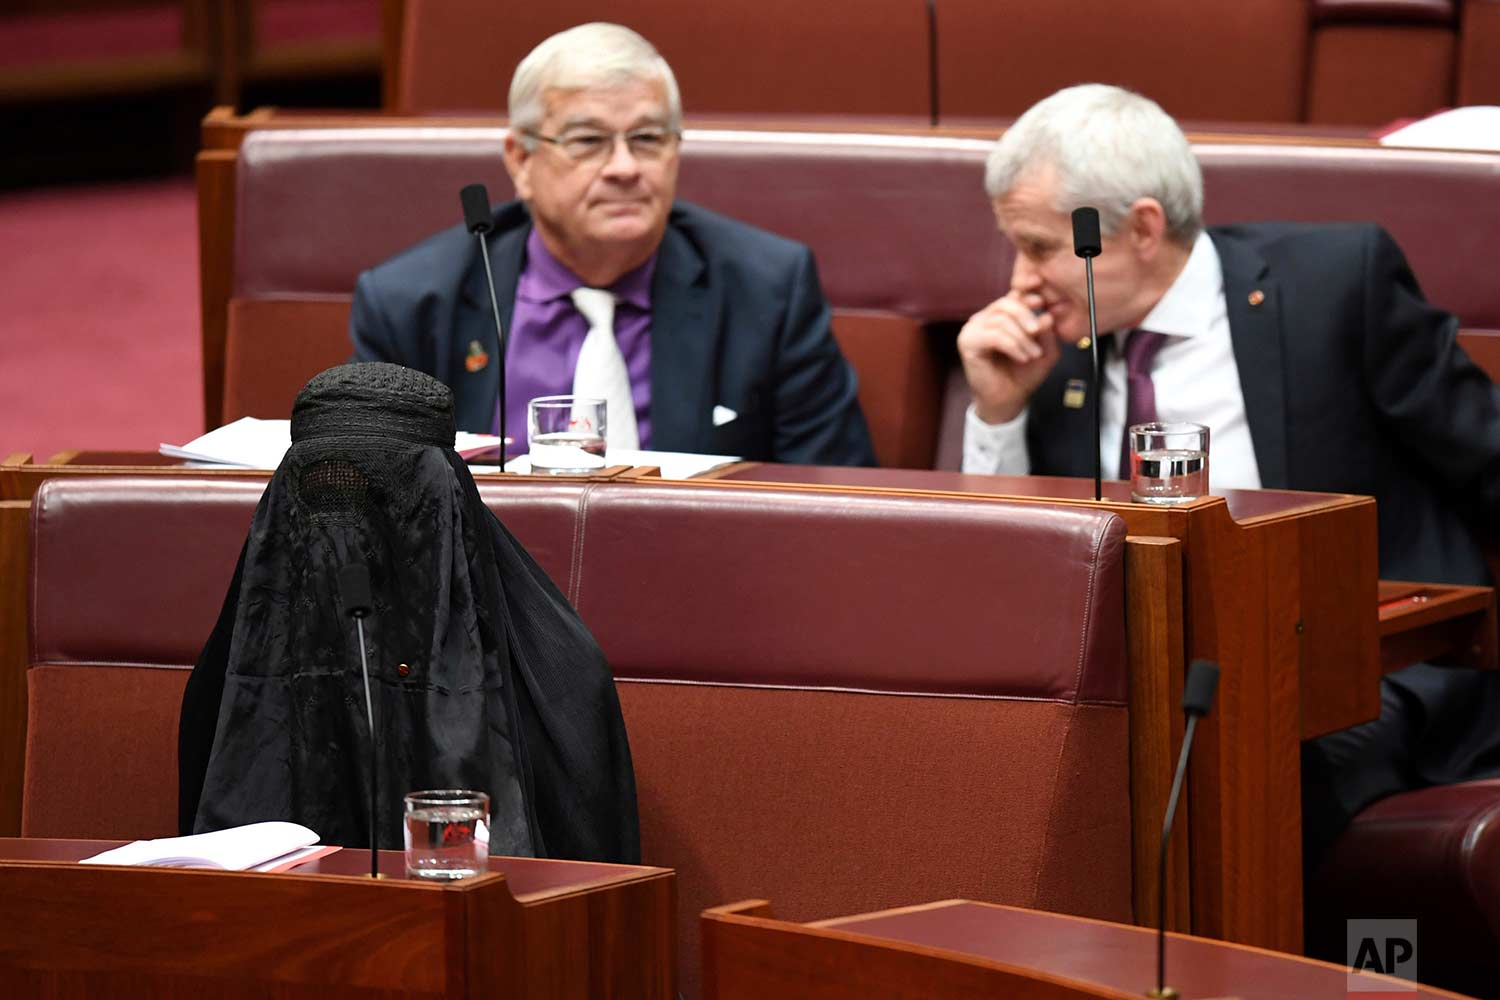 Sen. Pauline Hanson, bottom left, wears a burqa during question time in the Senate chamber at Parliament House in Canberra, Australia, Thursday, Aug. 17, 2017. (Lukas Coch/AAP Image via AP)